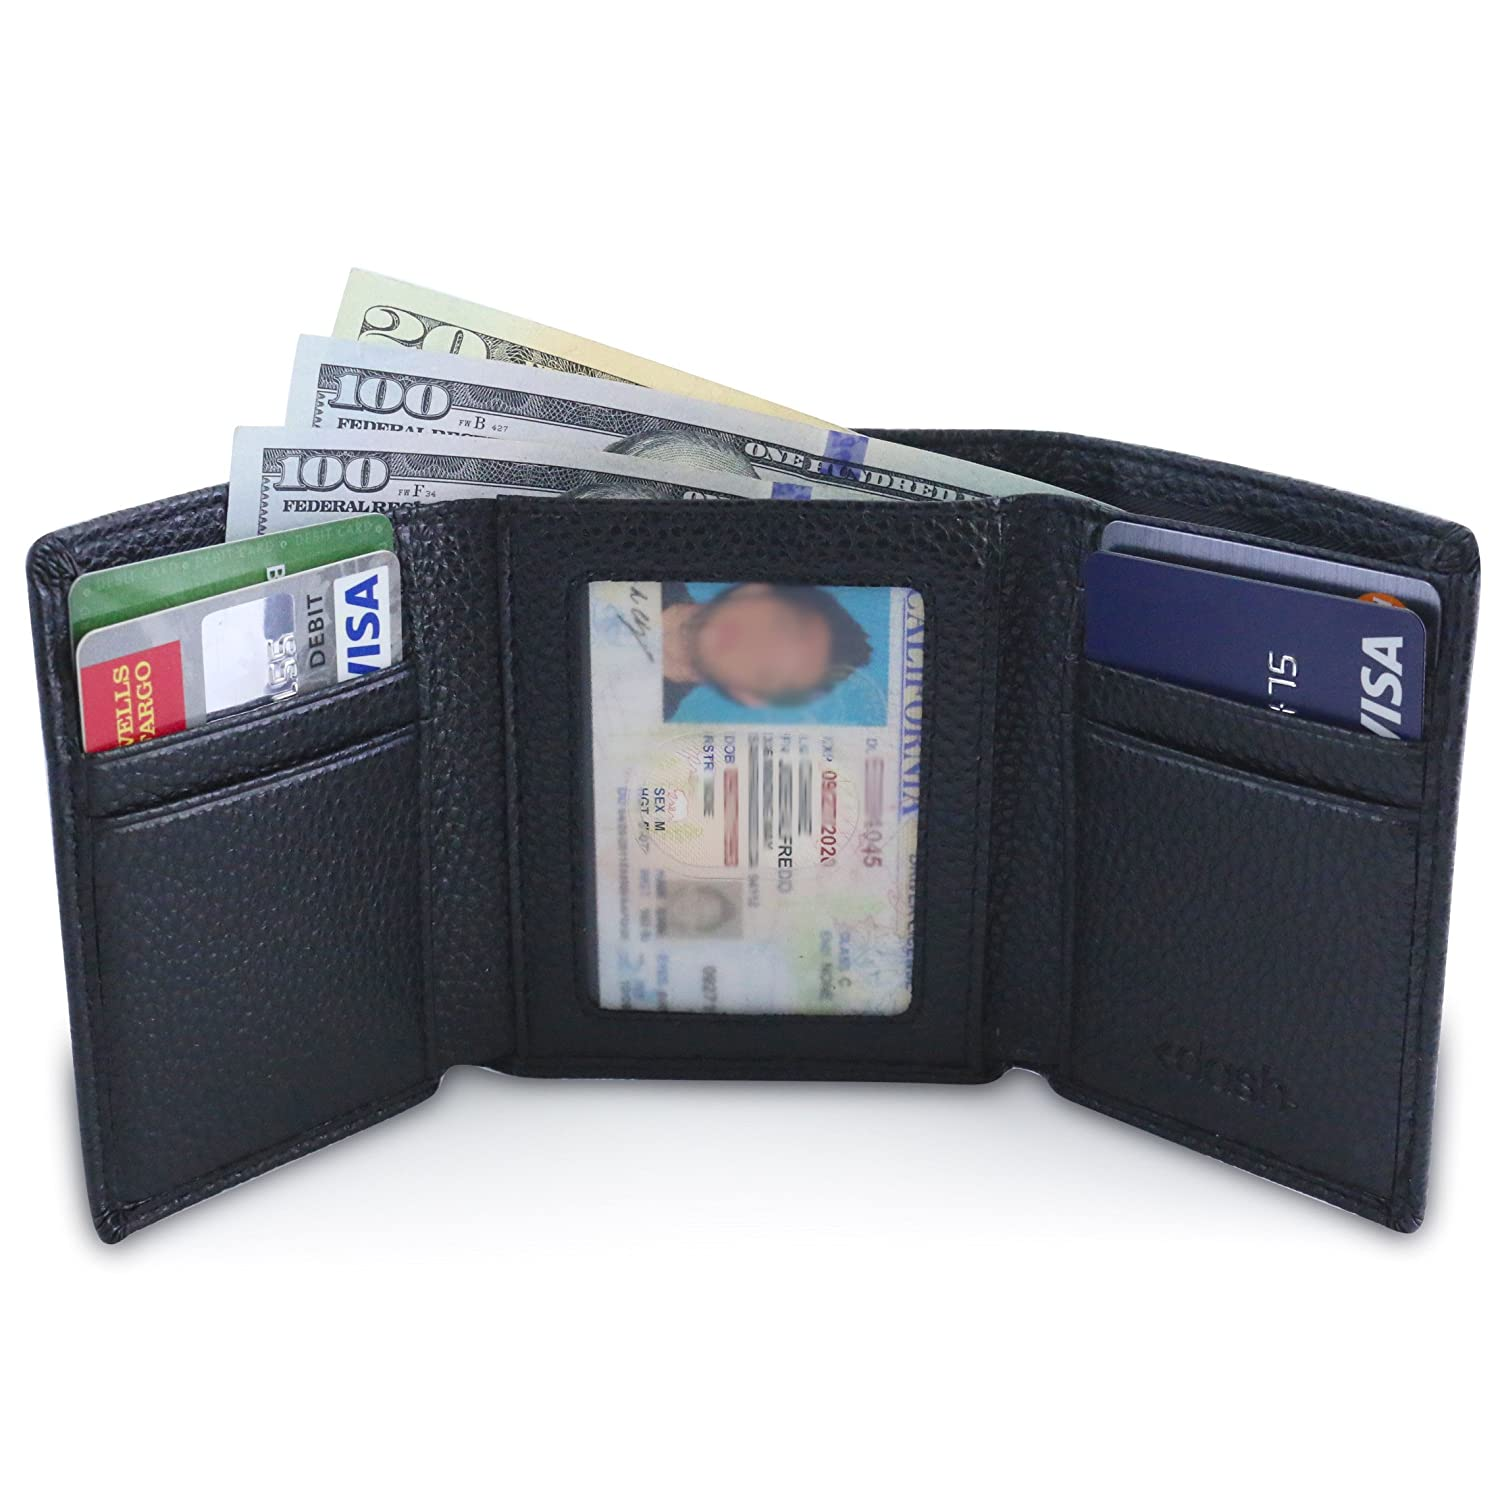 DASH Co. Slim TriFold RFID Men's Wallet- w/ ID Window, Extra Capacity, 9 Slots & Cash